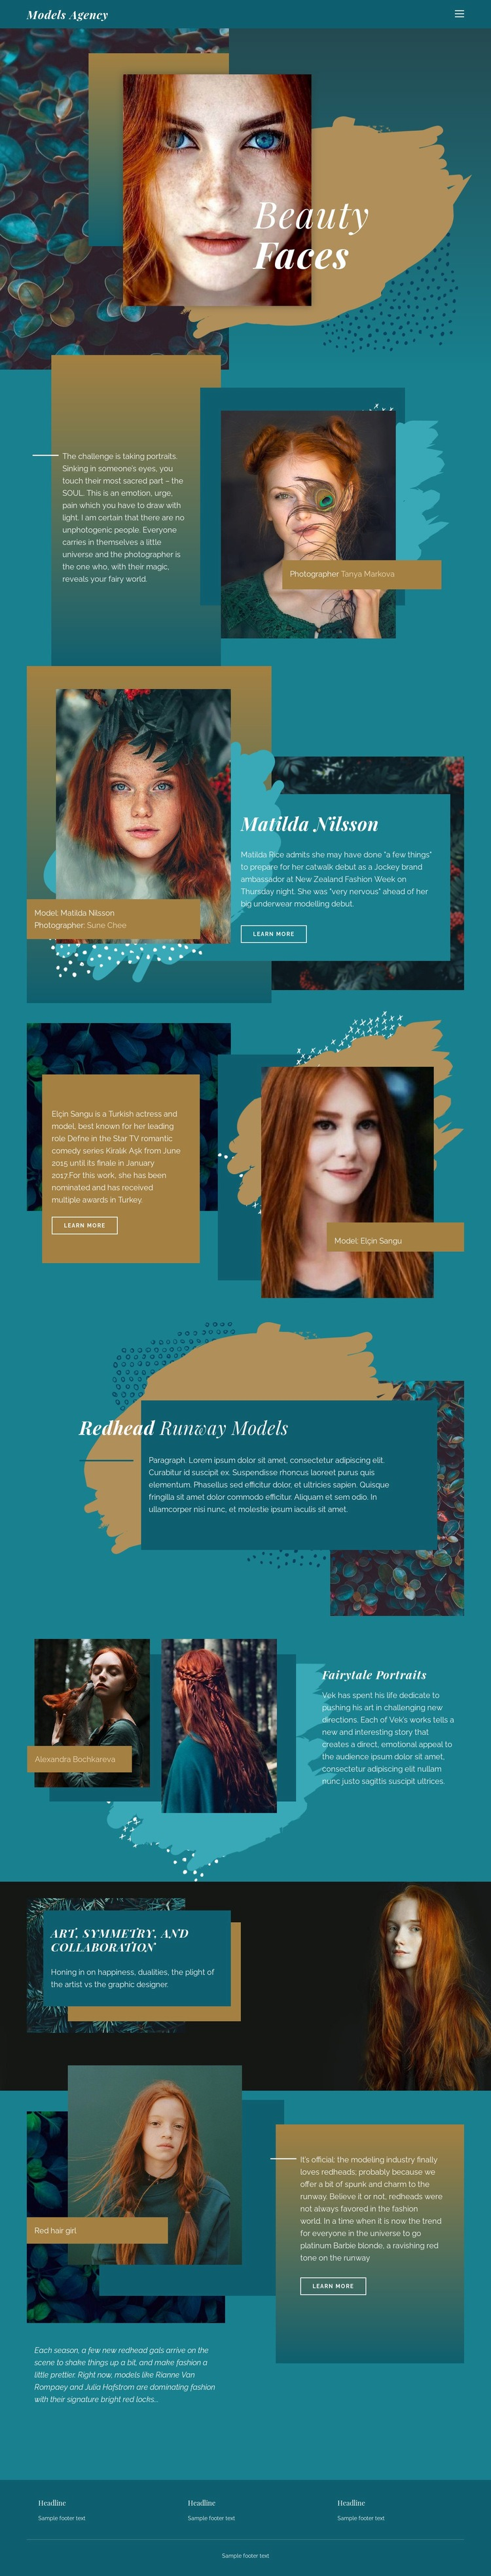 Faces of modern fashion Html Code Example